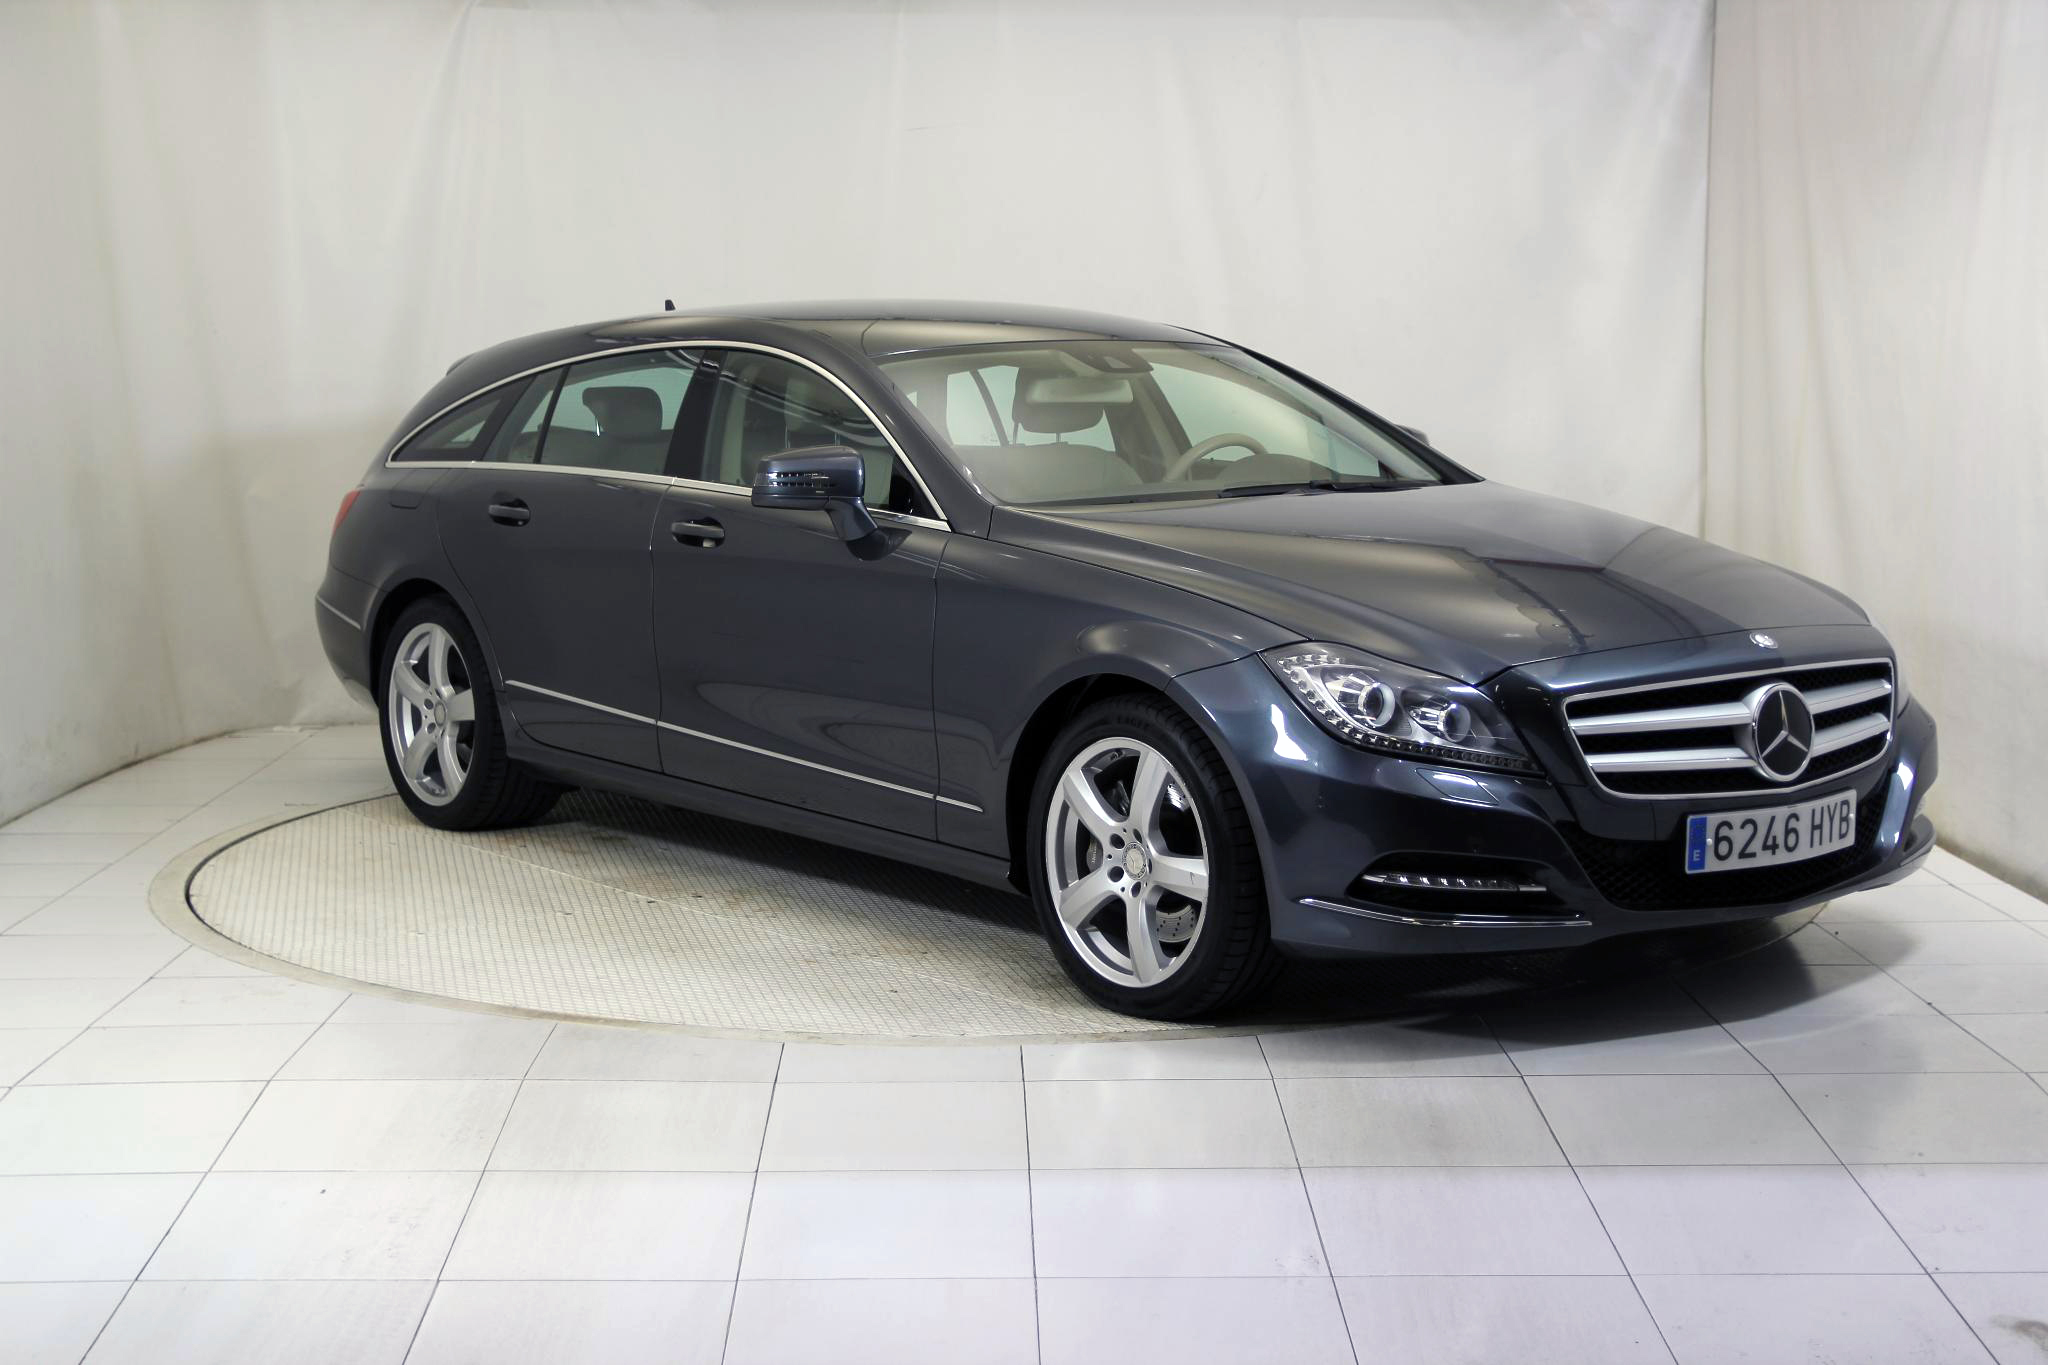 Mercedes-Benz Clase CLS CLS SHOOTING BRAKE 350 CDI AUTO imagen 4